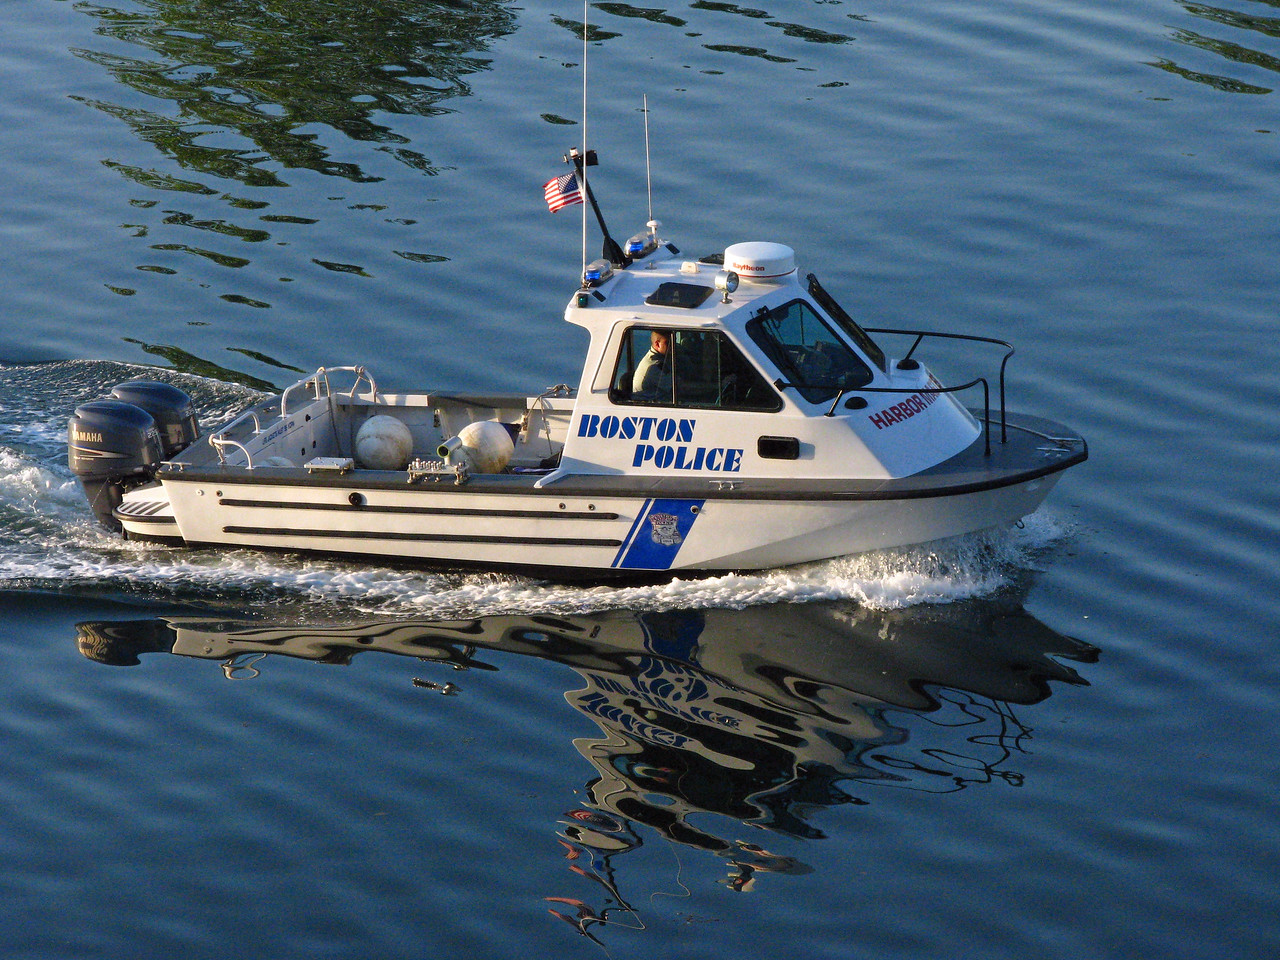 Boston Harbor Police.